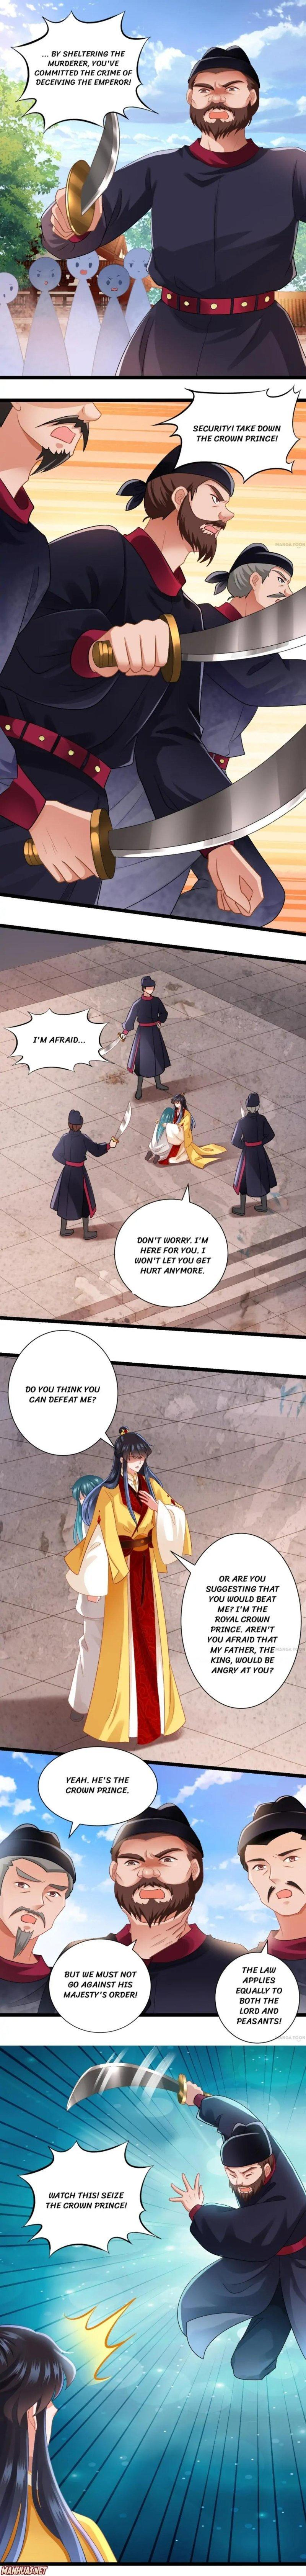 What? The Crown Prince Is Pregnant! Chapter 164 page 3 - Mangakakalots.com